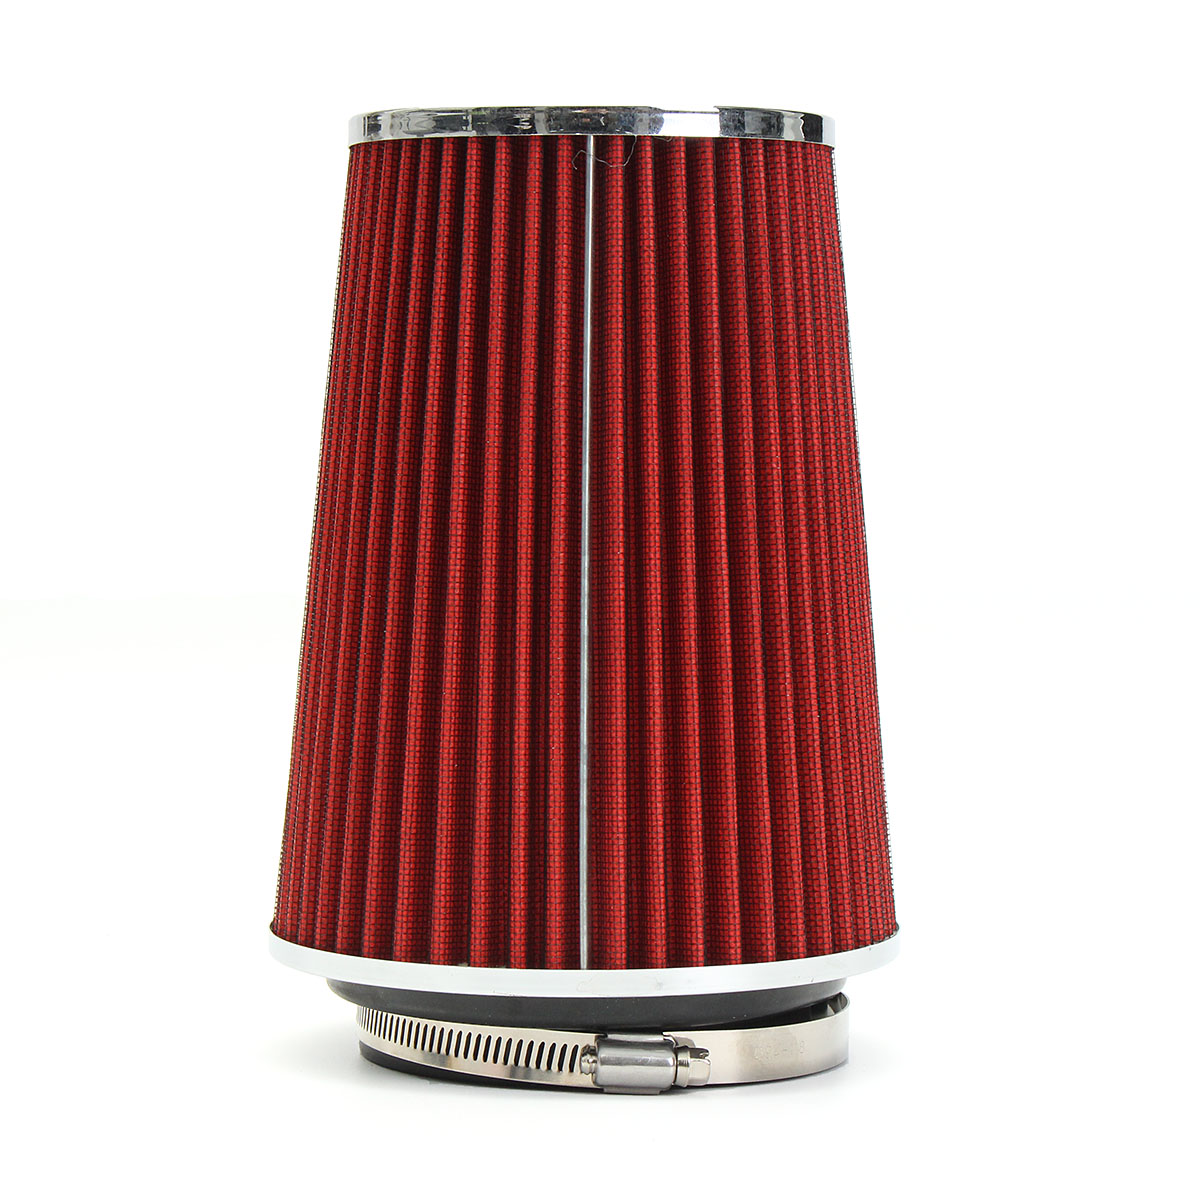 Buy 4 Inch Red Truck Long Performance High Flow Cold Air Intake Cone Dry Filter Car